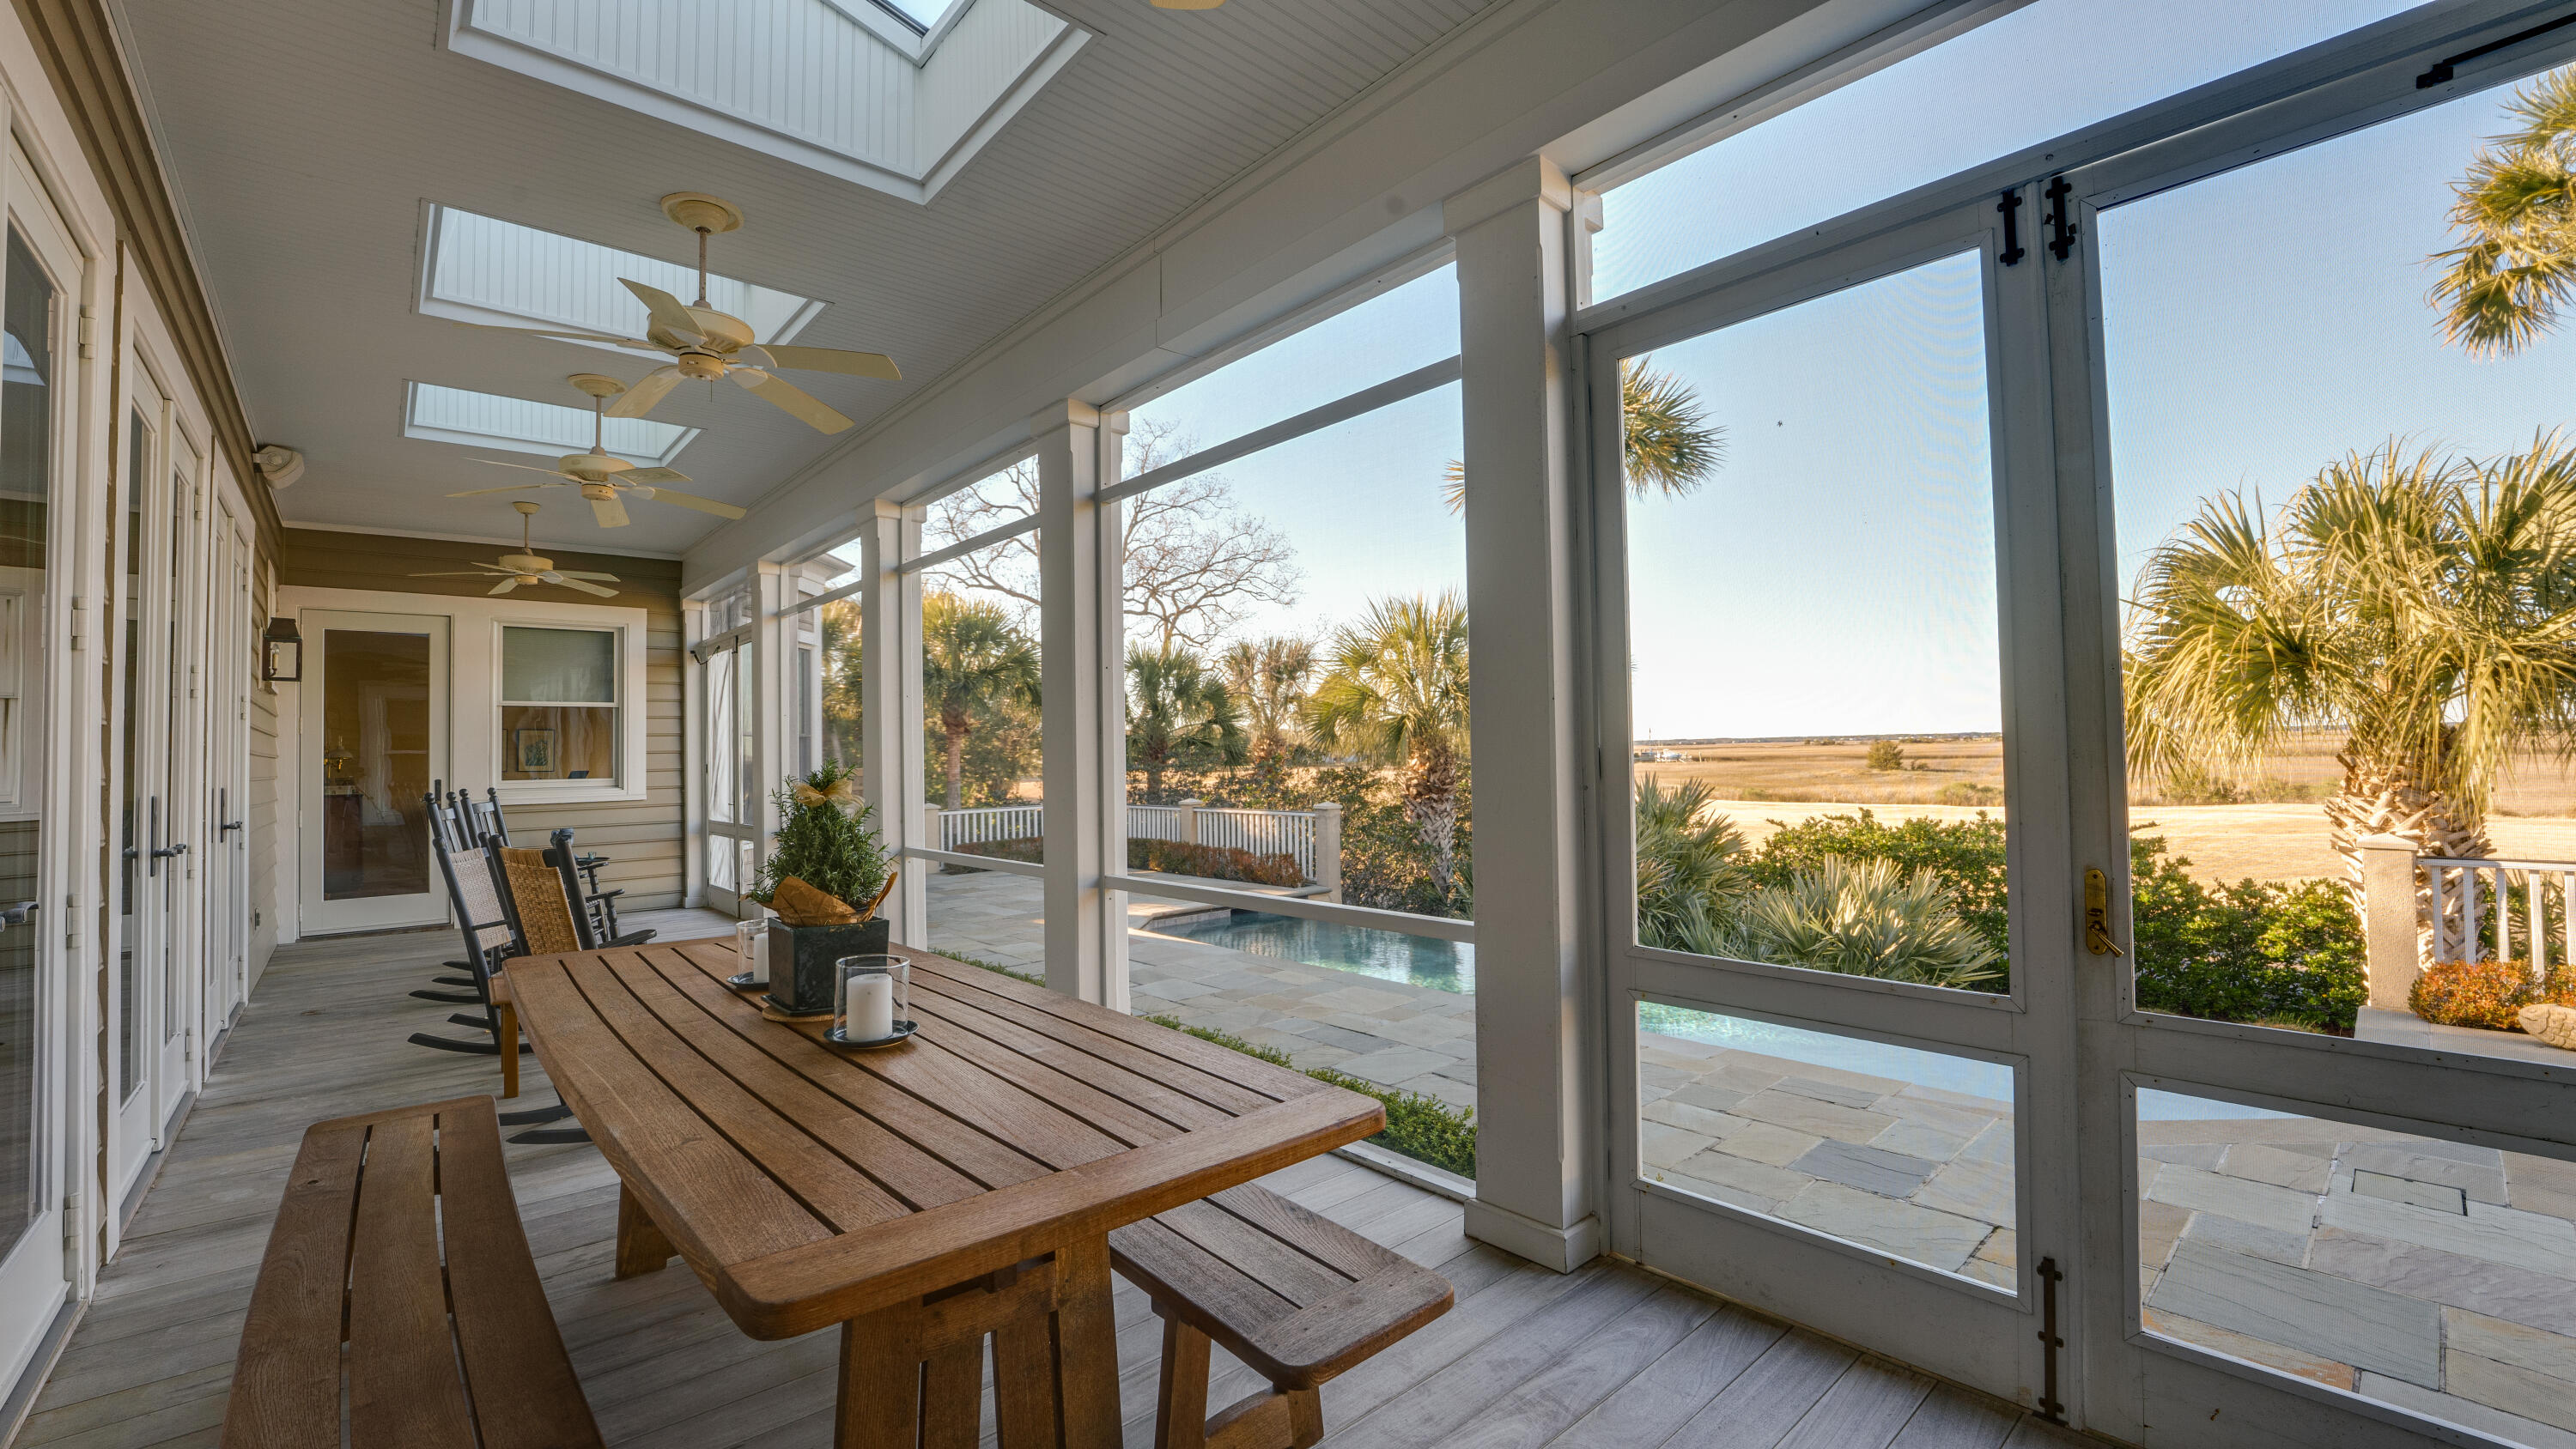 Wild Dunes Homes For Sale - 20 Fairway Village, Isle of Palms, SC - 11